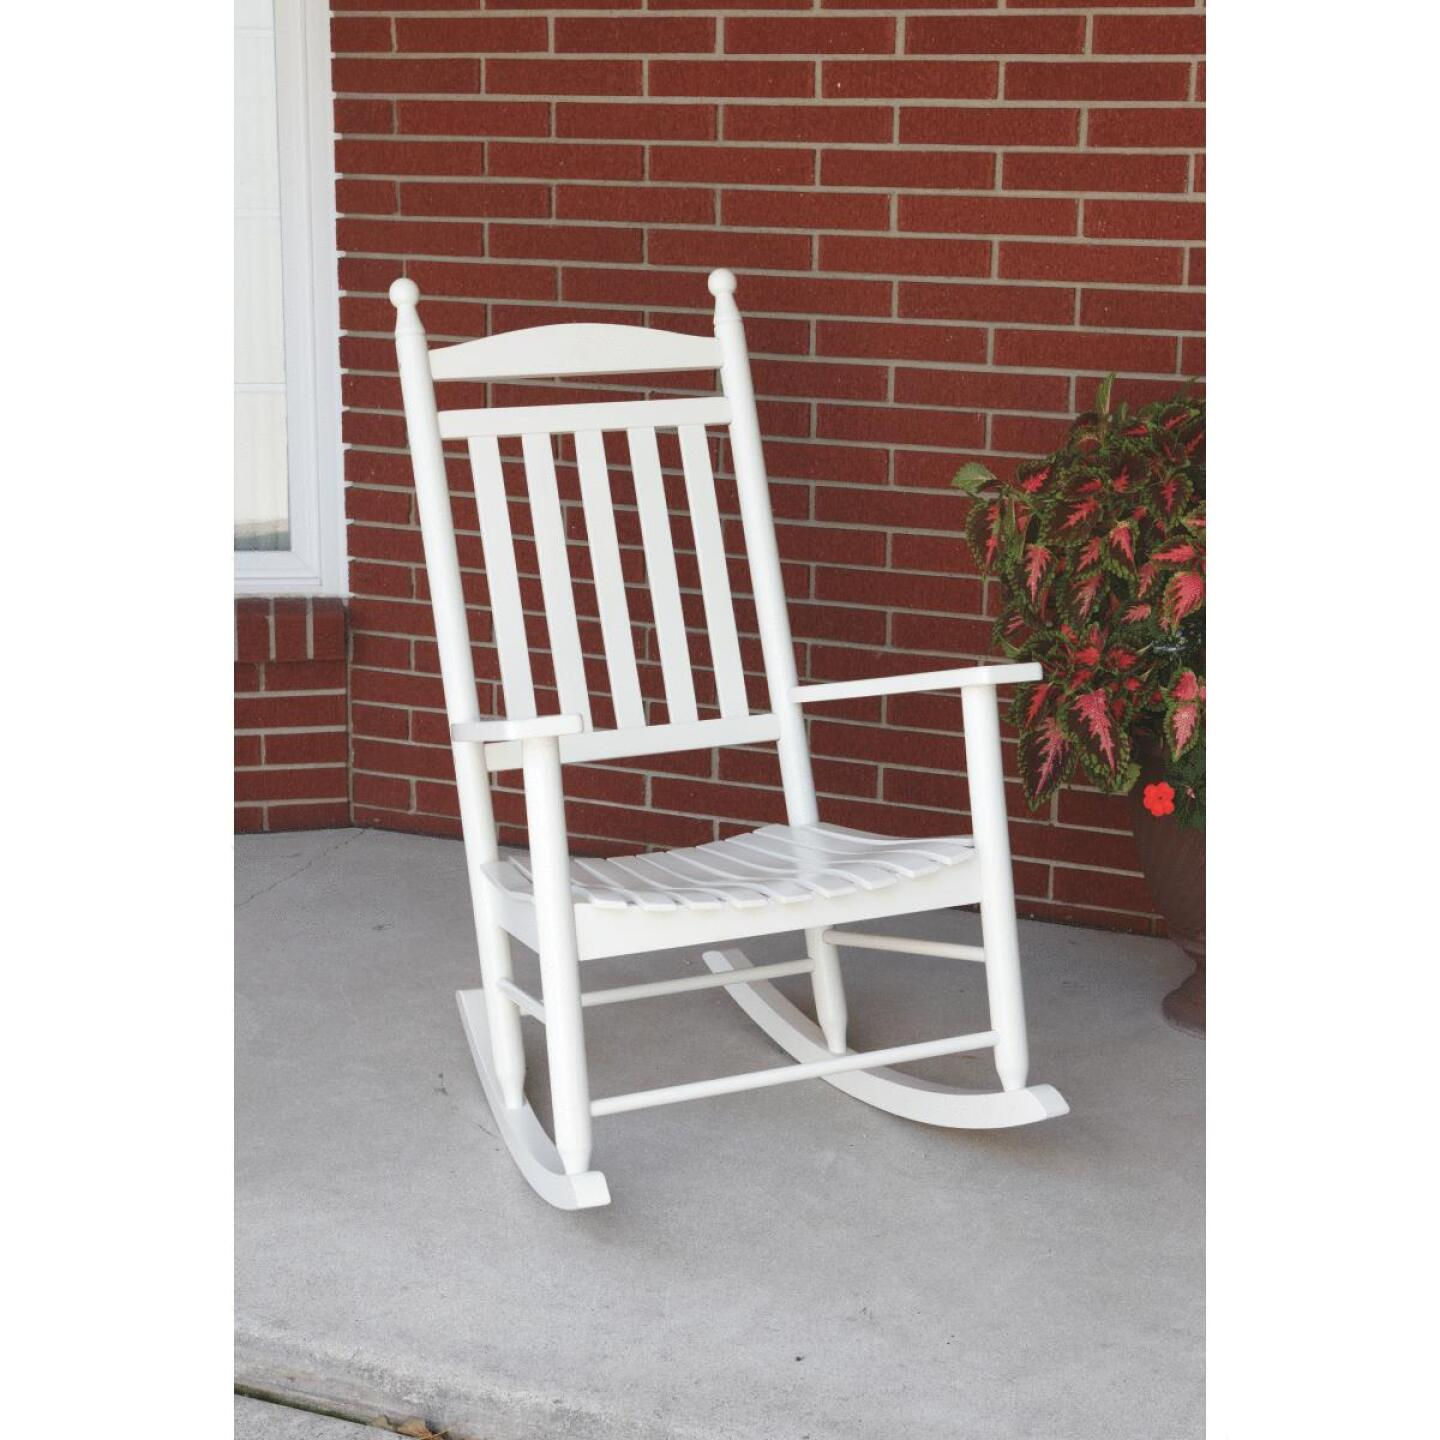 Knollwood White Wood Rocking Chair Image 2